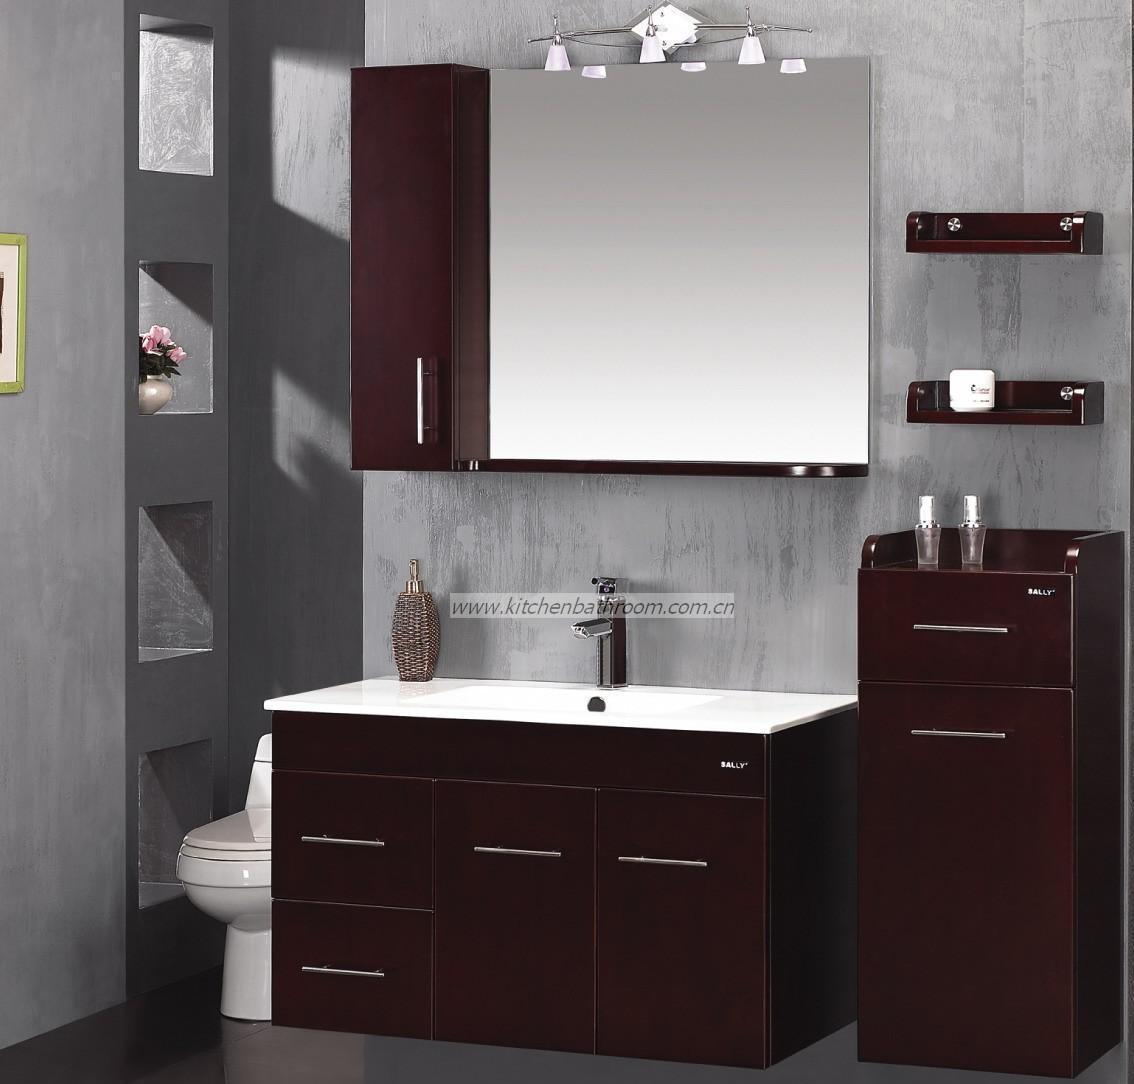 china bathroom cabinets yxbc 2022 china bathroom